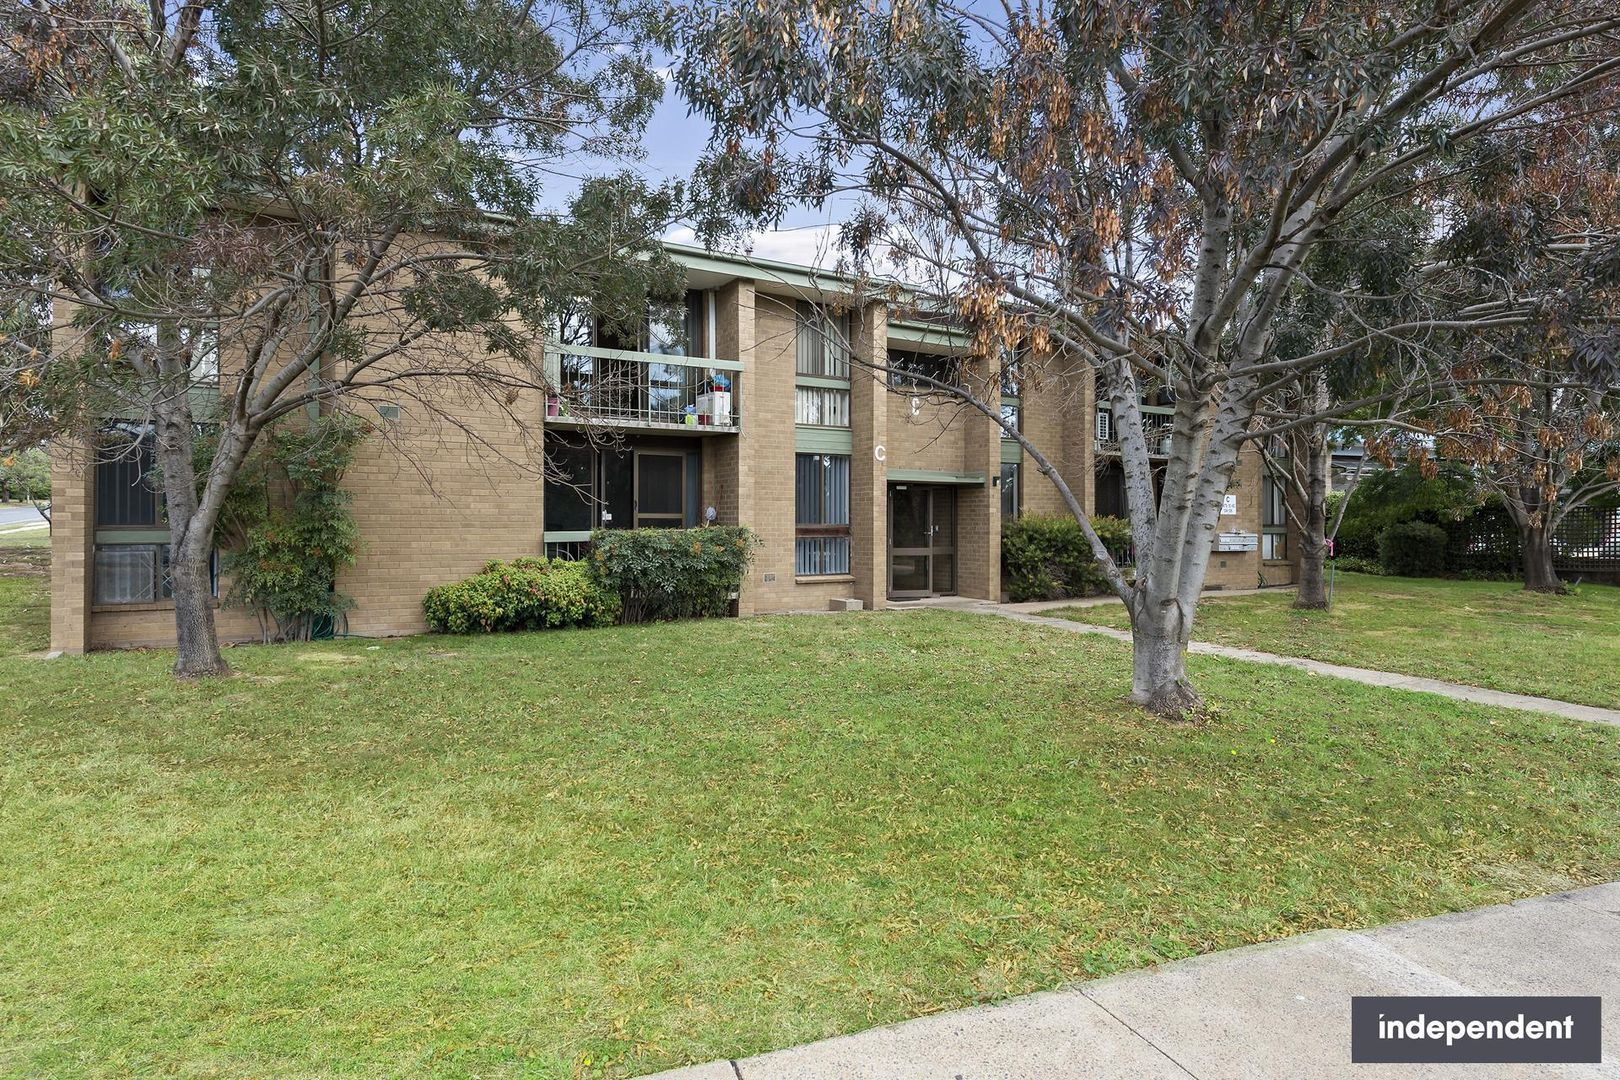 8C/124 Ross Smith Crescent, Scullin ACT 2614, Image 0